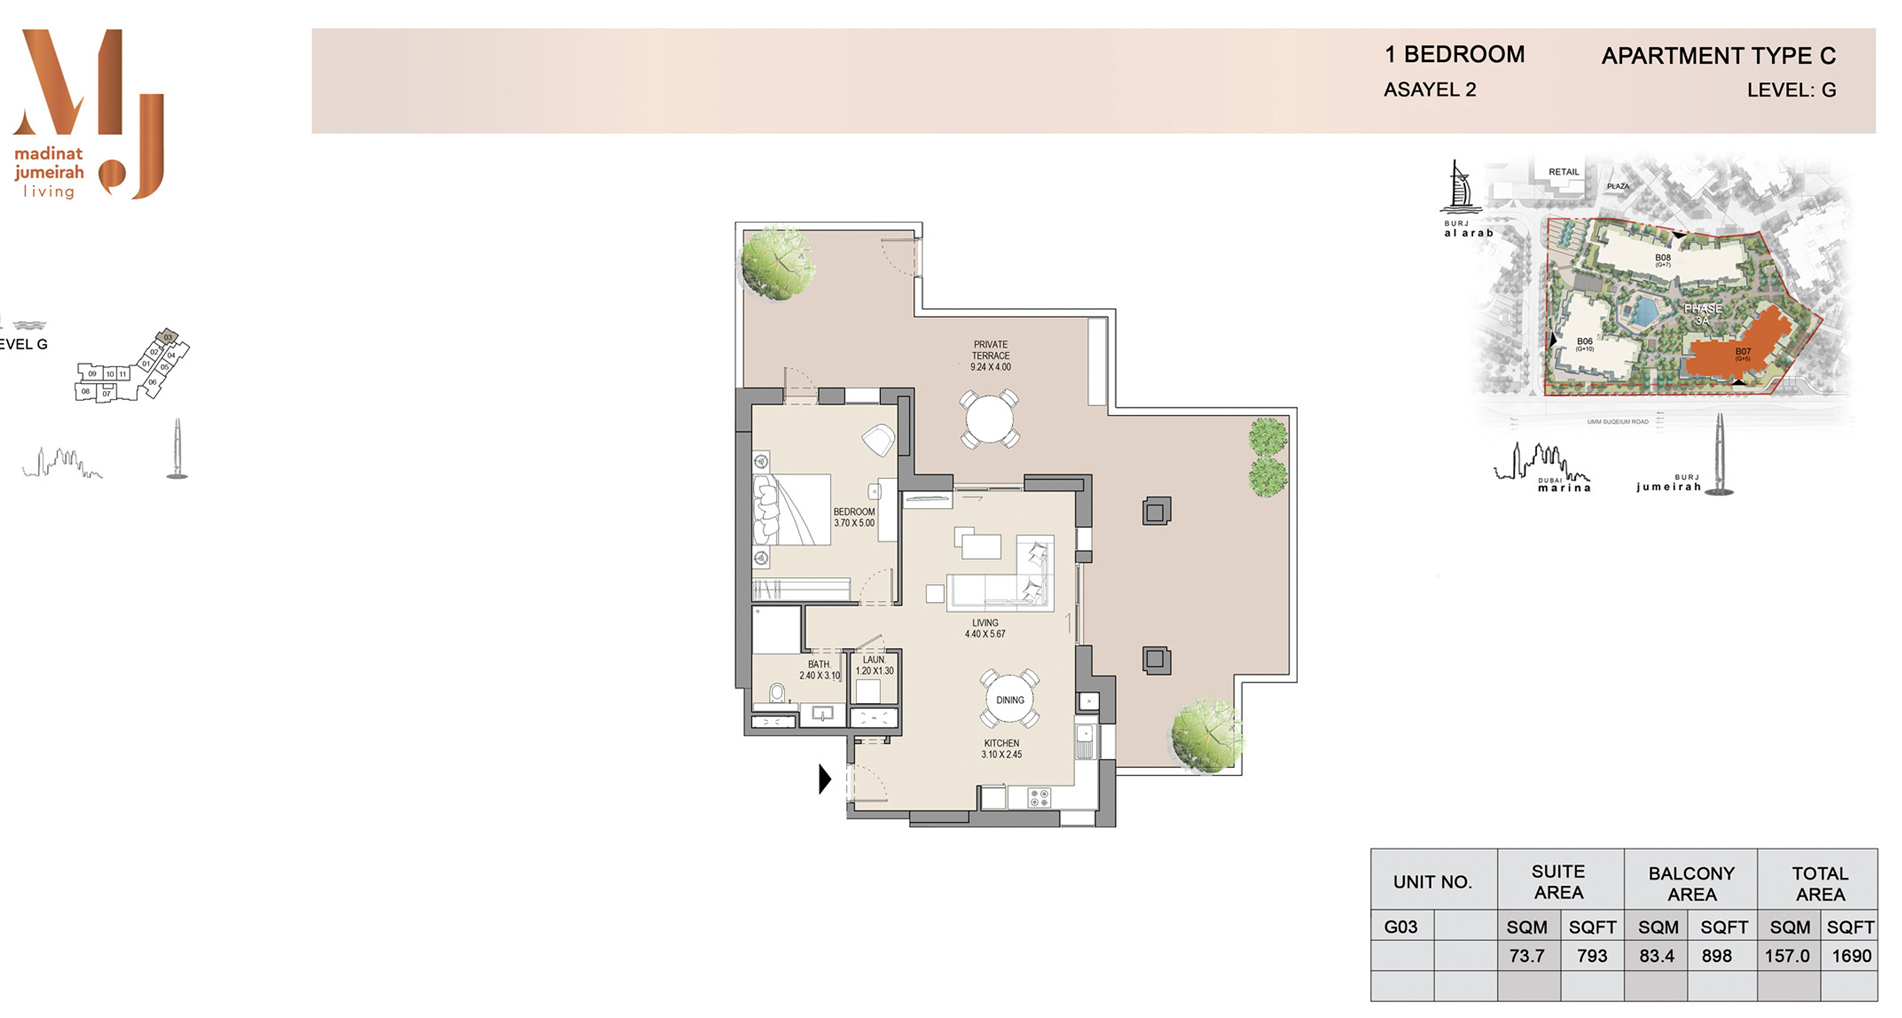 Building 2, 1-Bed Type C Level G, Size 1690    sq. ft.